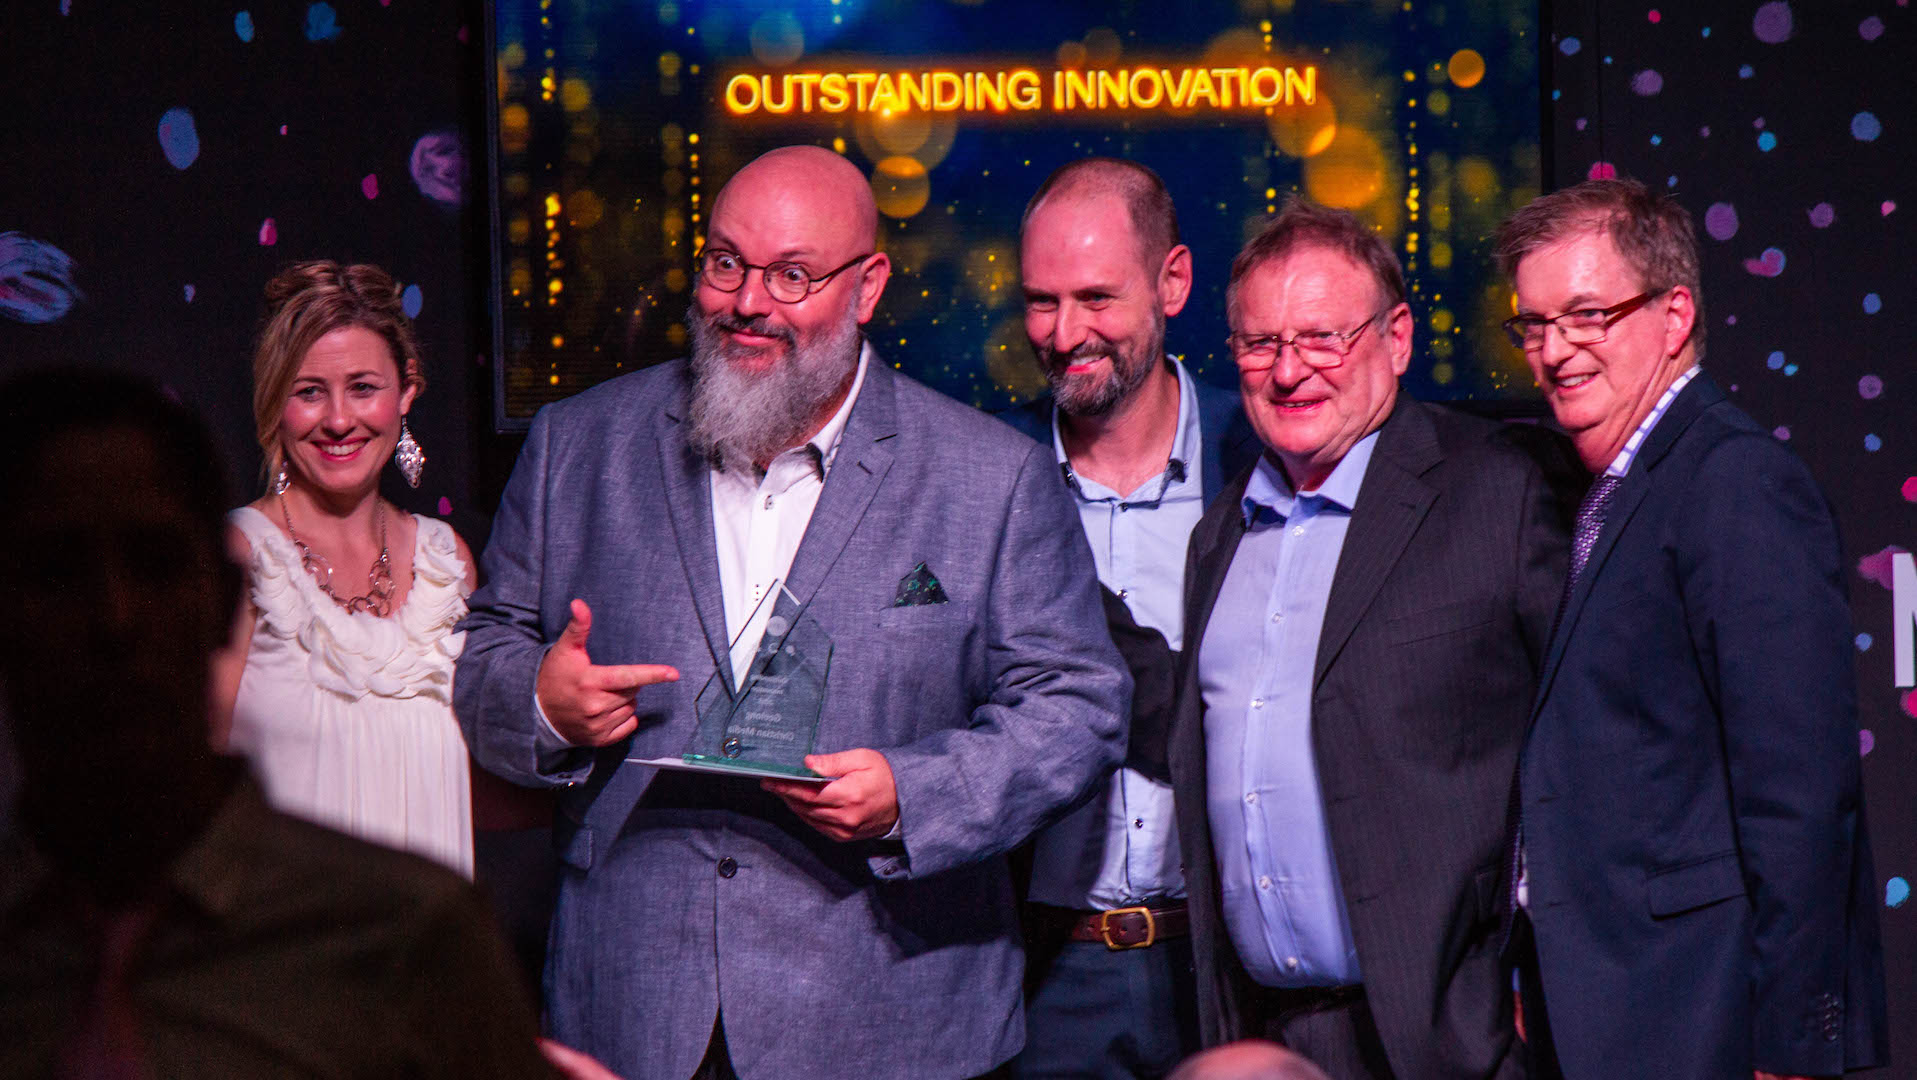 Winners Announced at CONNECT18 Gala Dinner